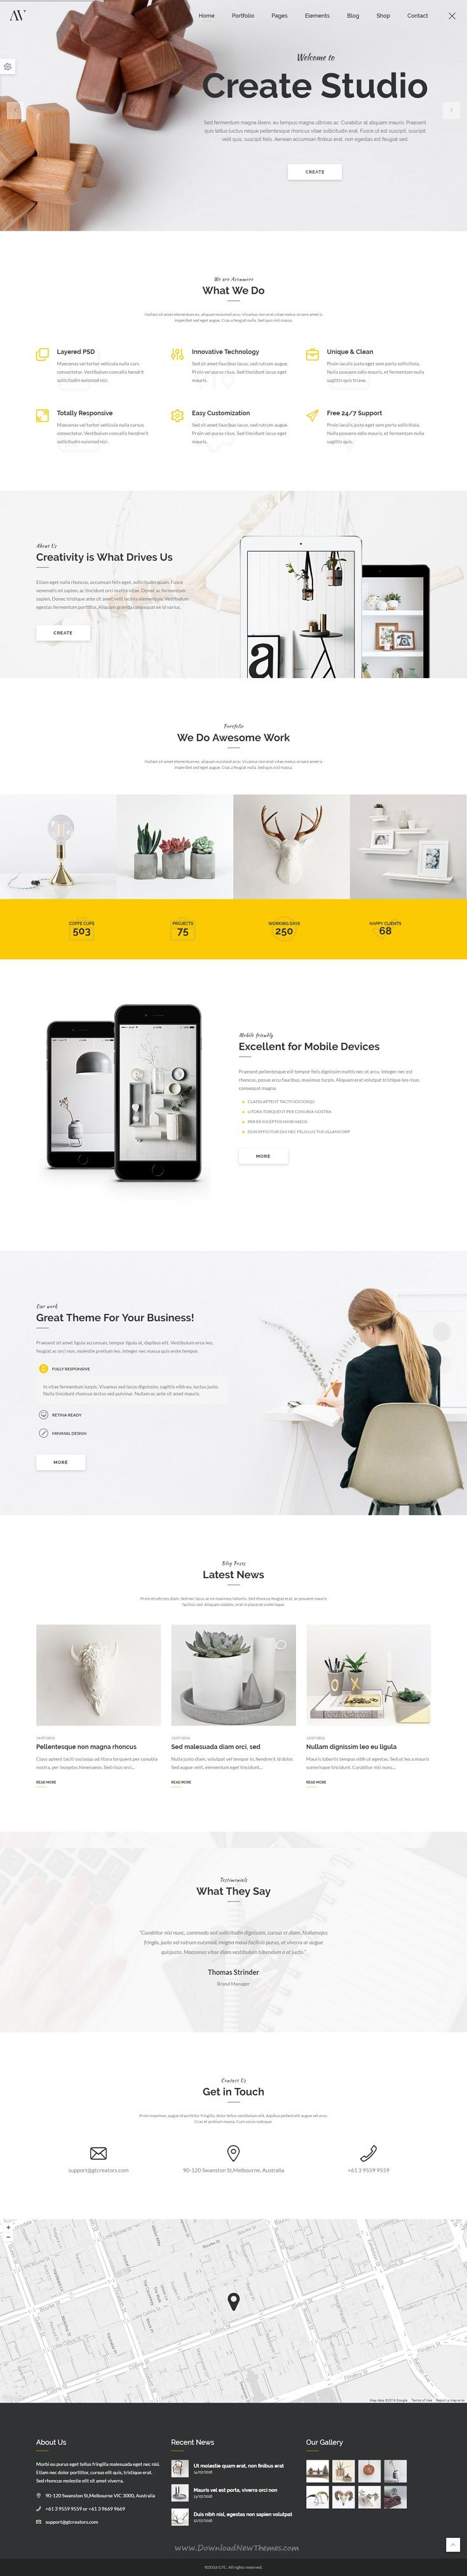 Avonmore is a creative and powerful multipurpose bootstrap template which is suitable for any type of Agency, #Portfolio, Design studio, Shop, Blog and much more